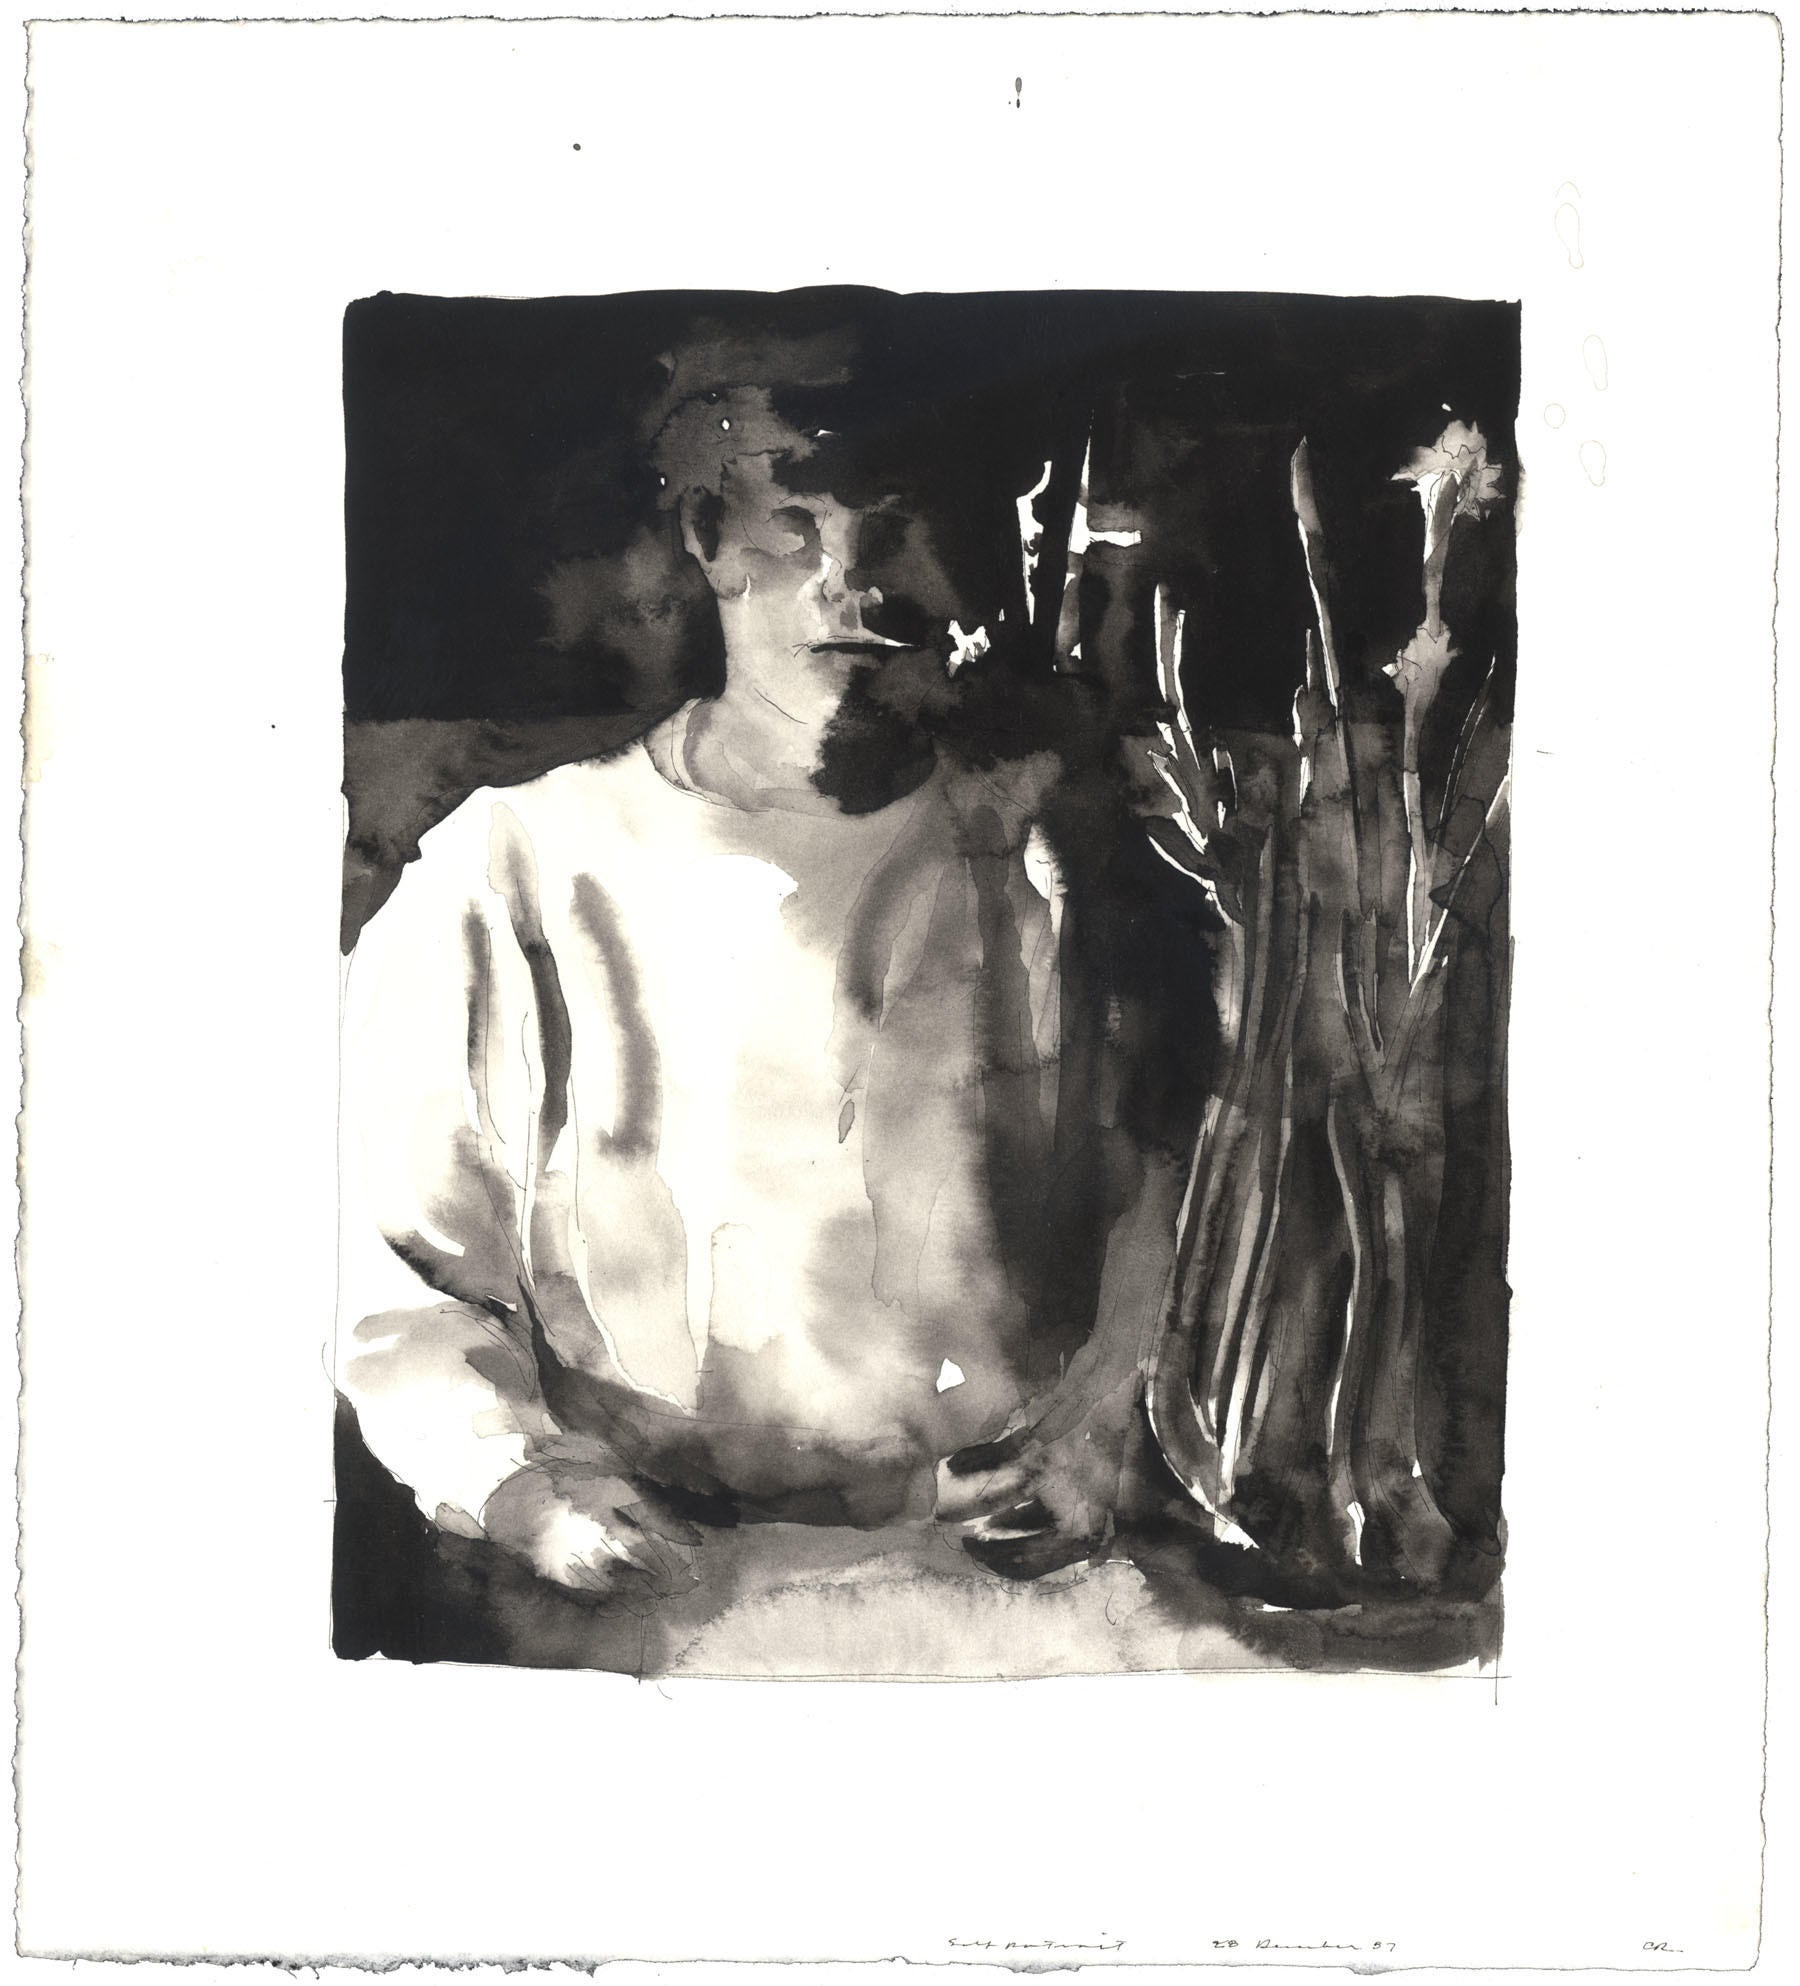 Large Self-Portrait with Paper Whites image